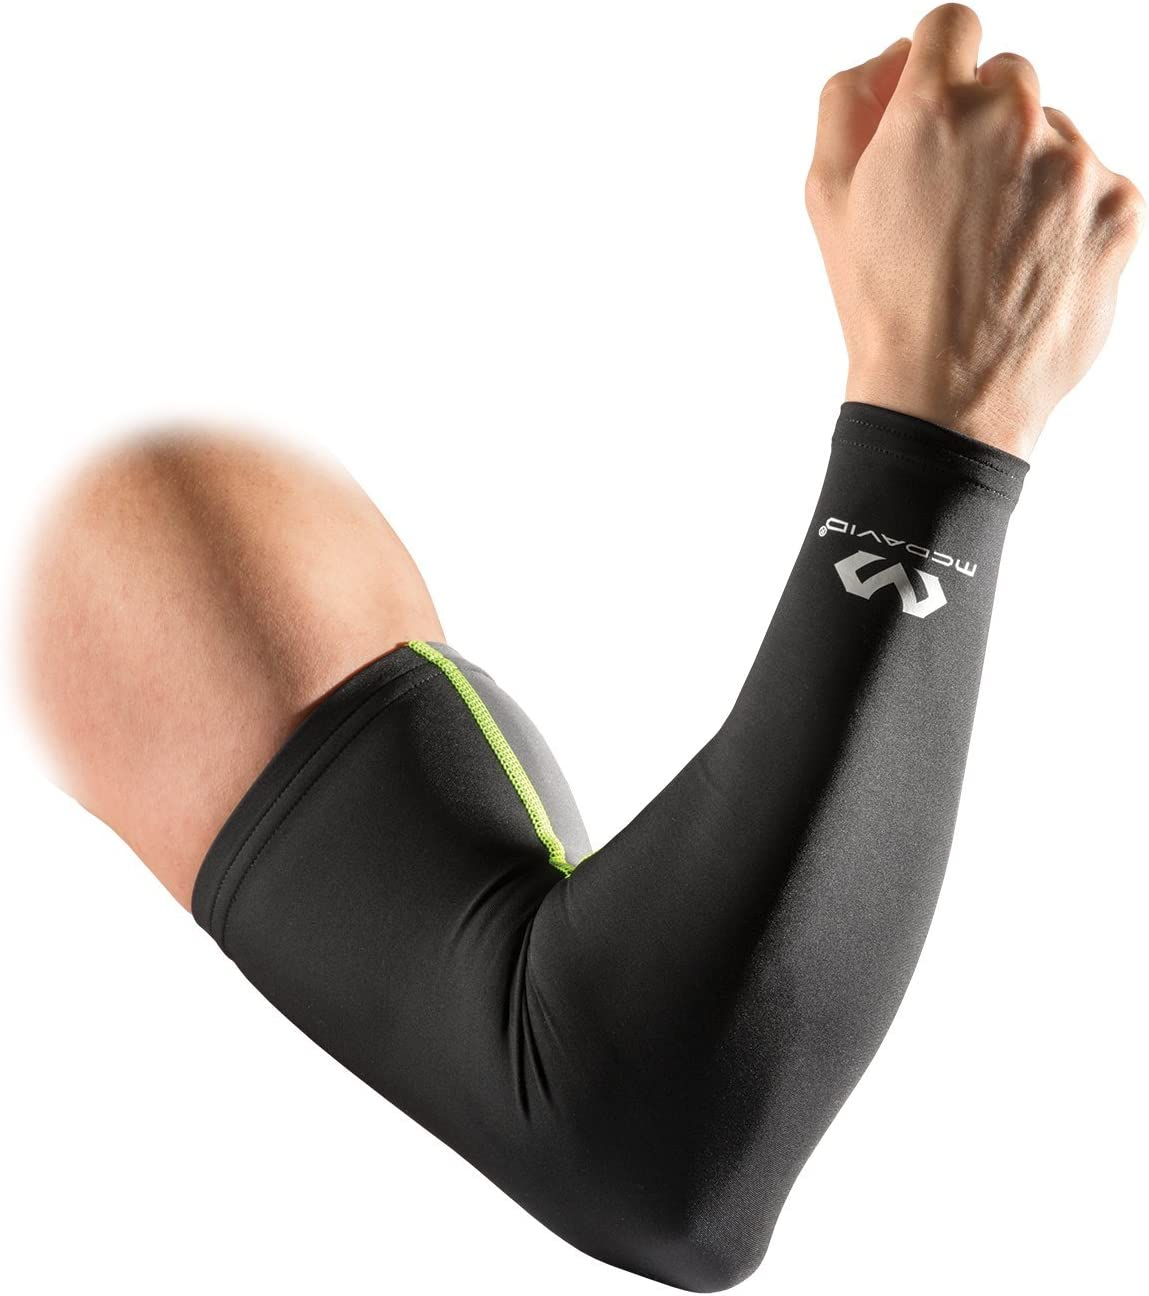 McDavid 6584 Compression Arm Sleeveswith 50 Sun Protection for Running